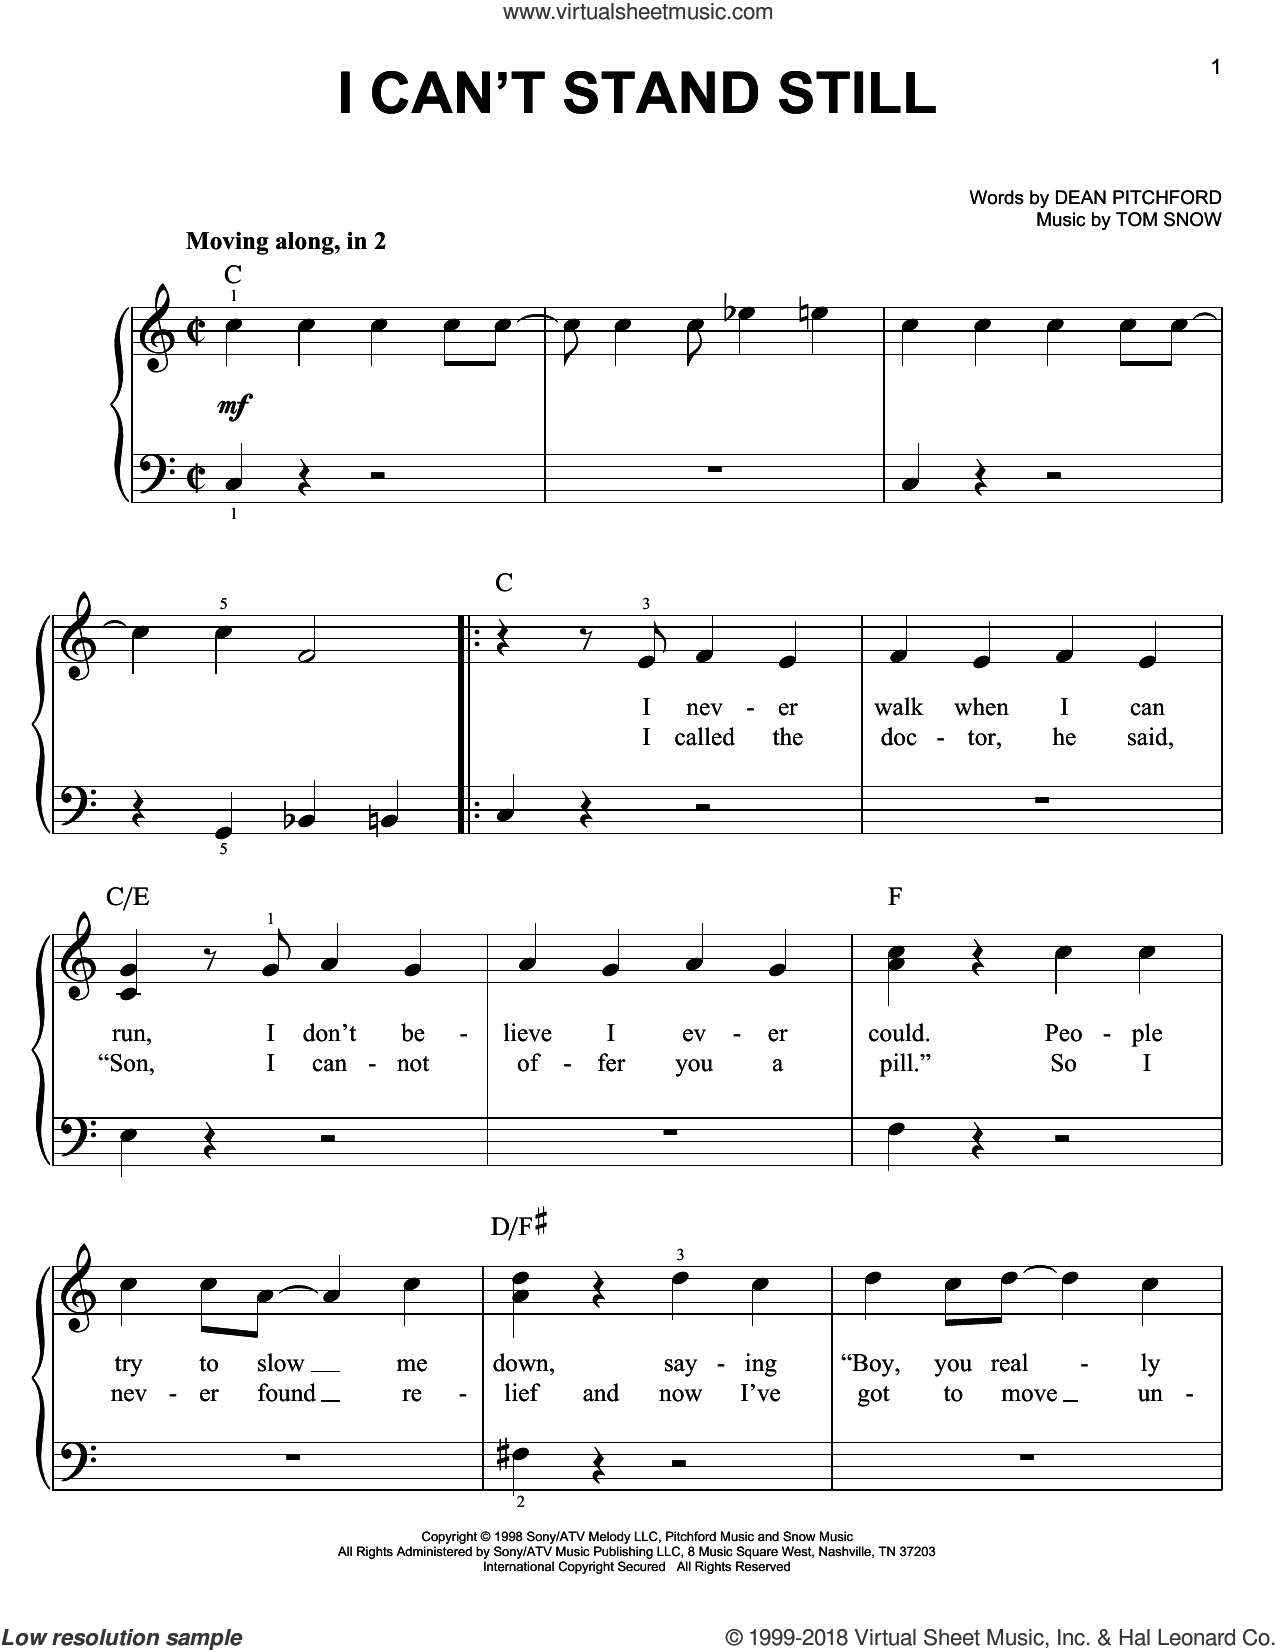 I Can't Stand Still sheet music for piano solo by Dean Pitchford